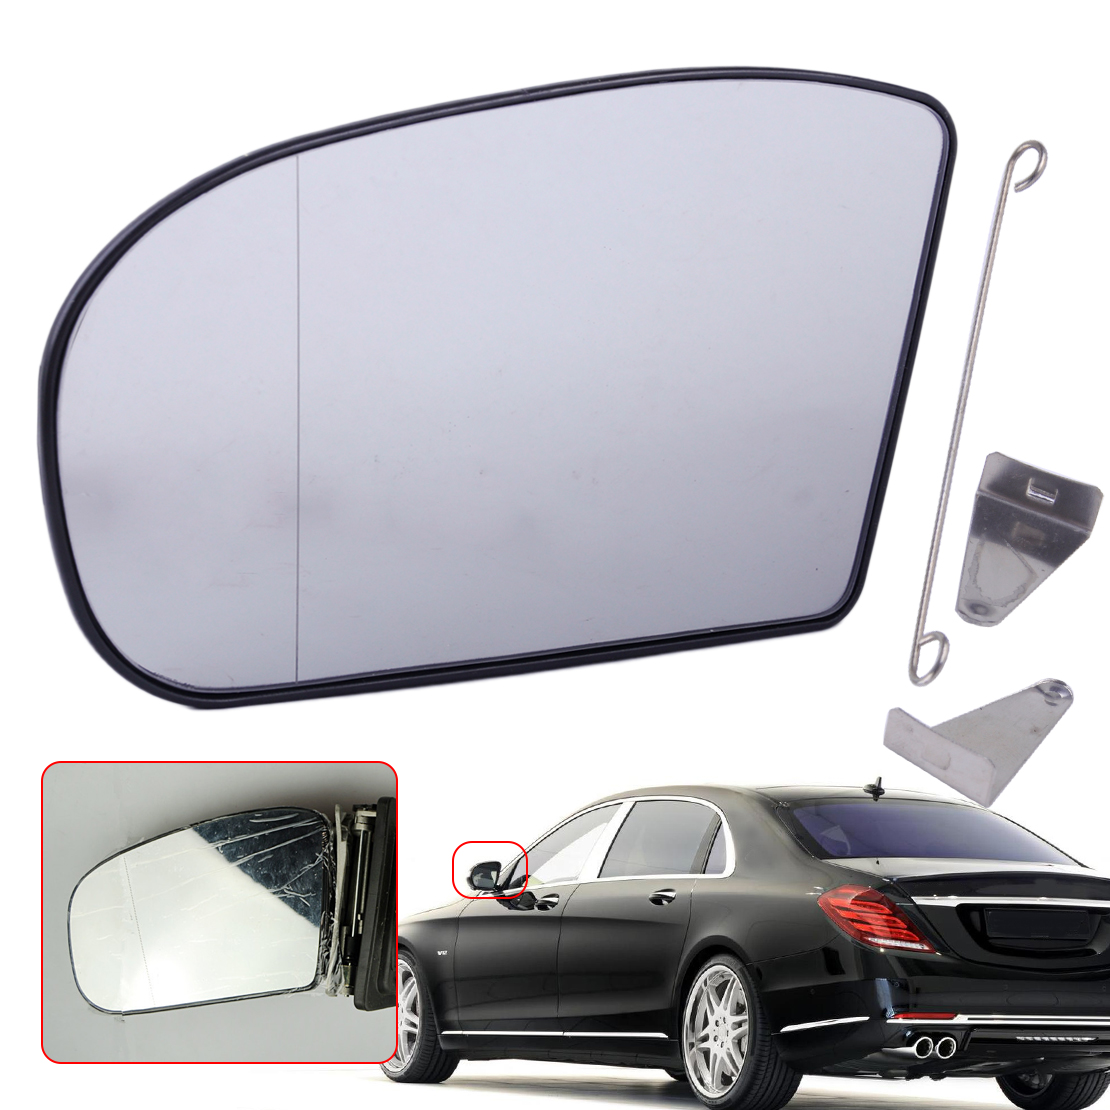 beler 2038100121 203 810 01 21 Left Heated Door Mirror Glass Aspherical Wide Angle Fit For Mercedes E class C Class W211 W203